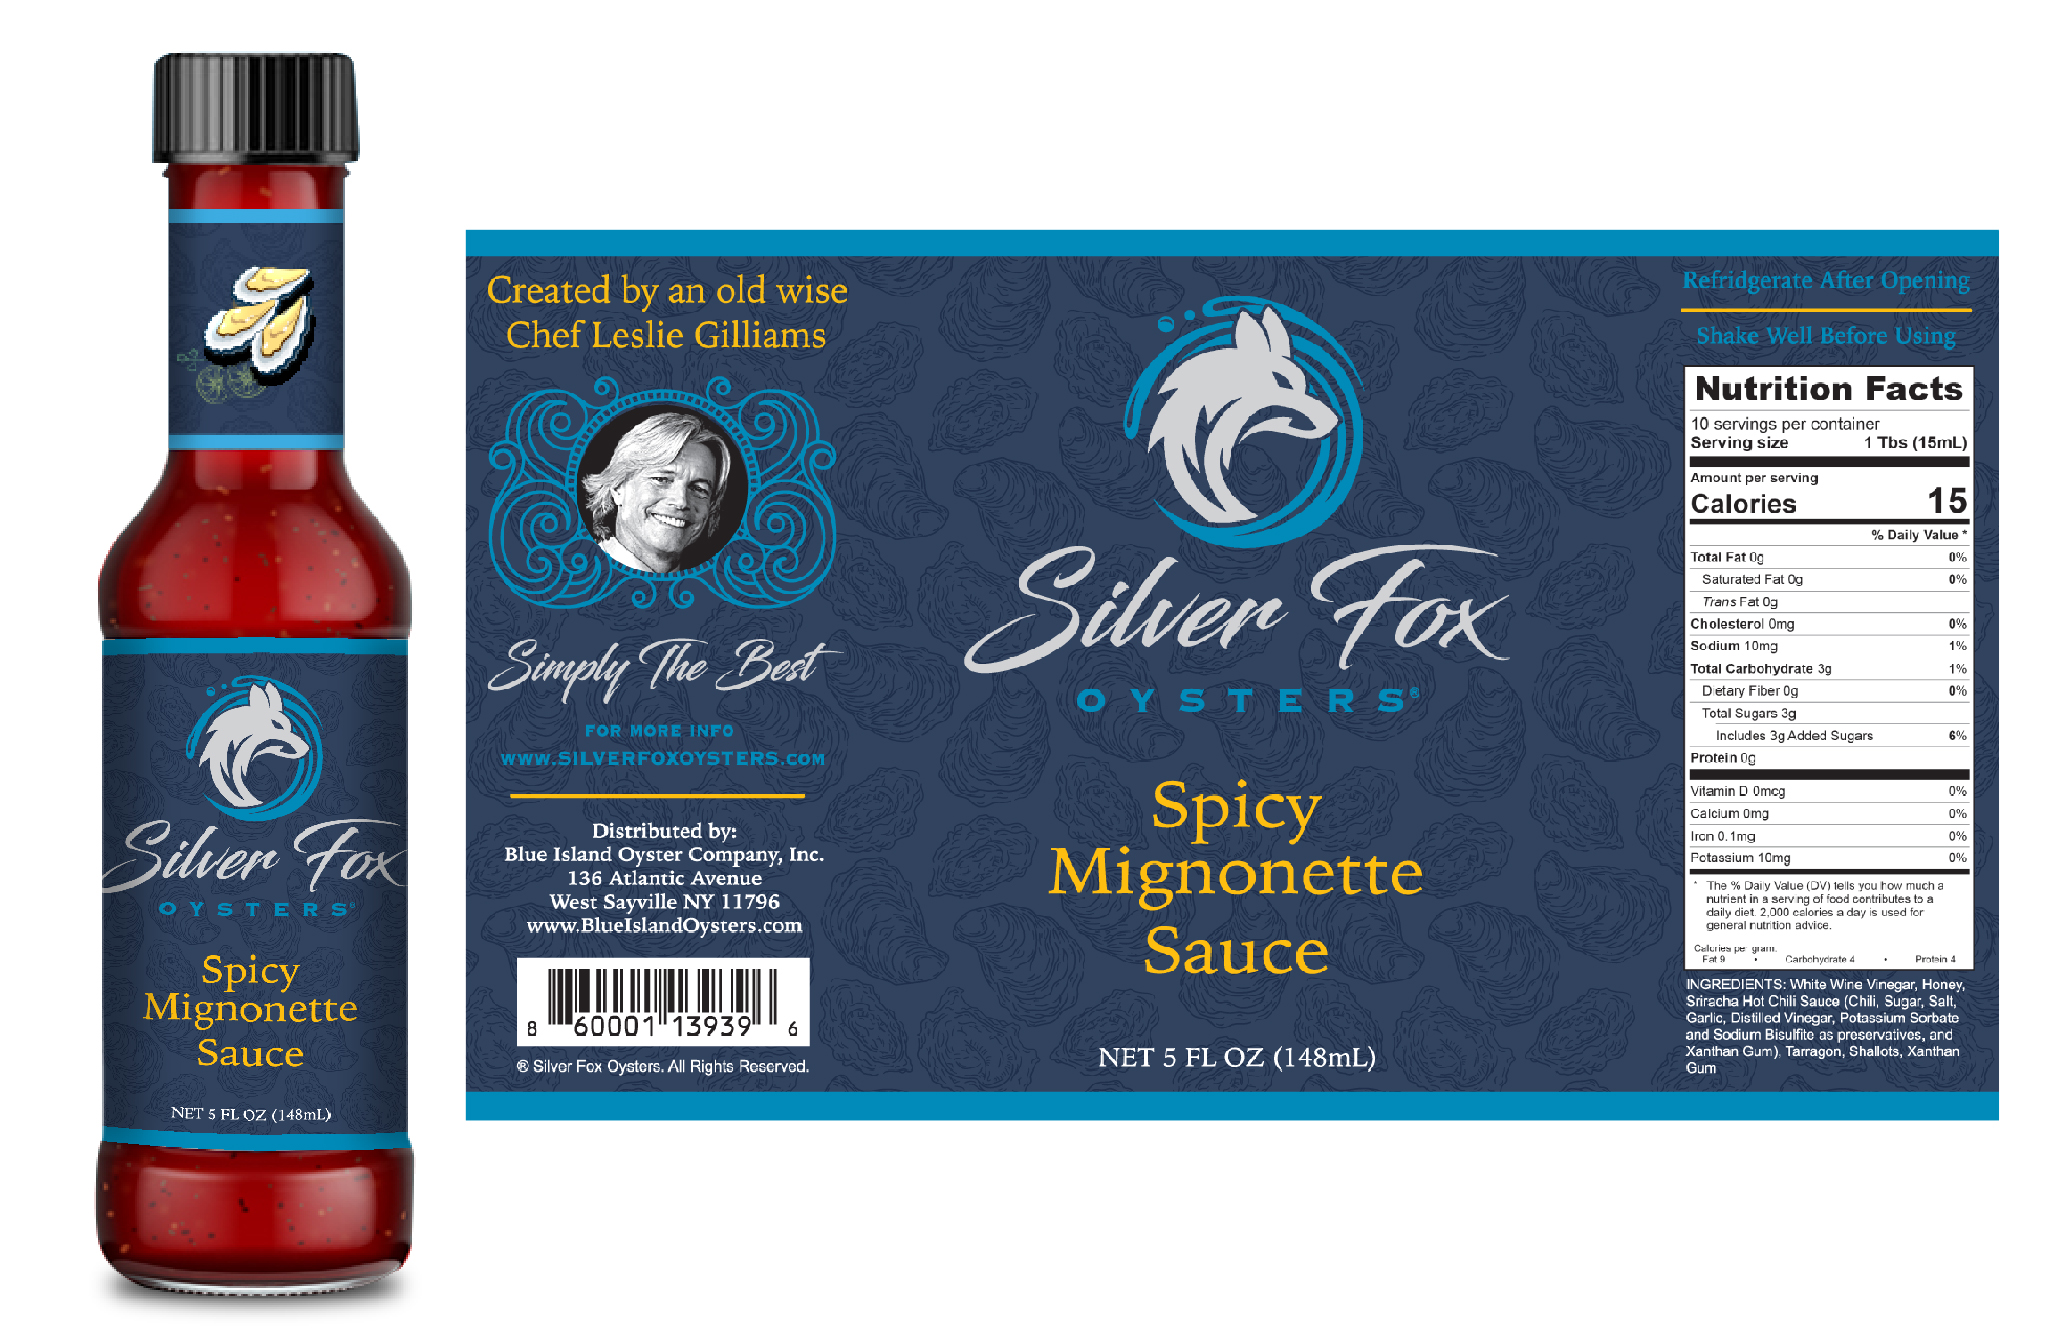 Silver Fox Oysters Packaging - Spicy Mignonette Sauce by Master Chef Leslie Gilliams and Blue Island Oysters